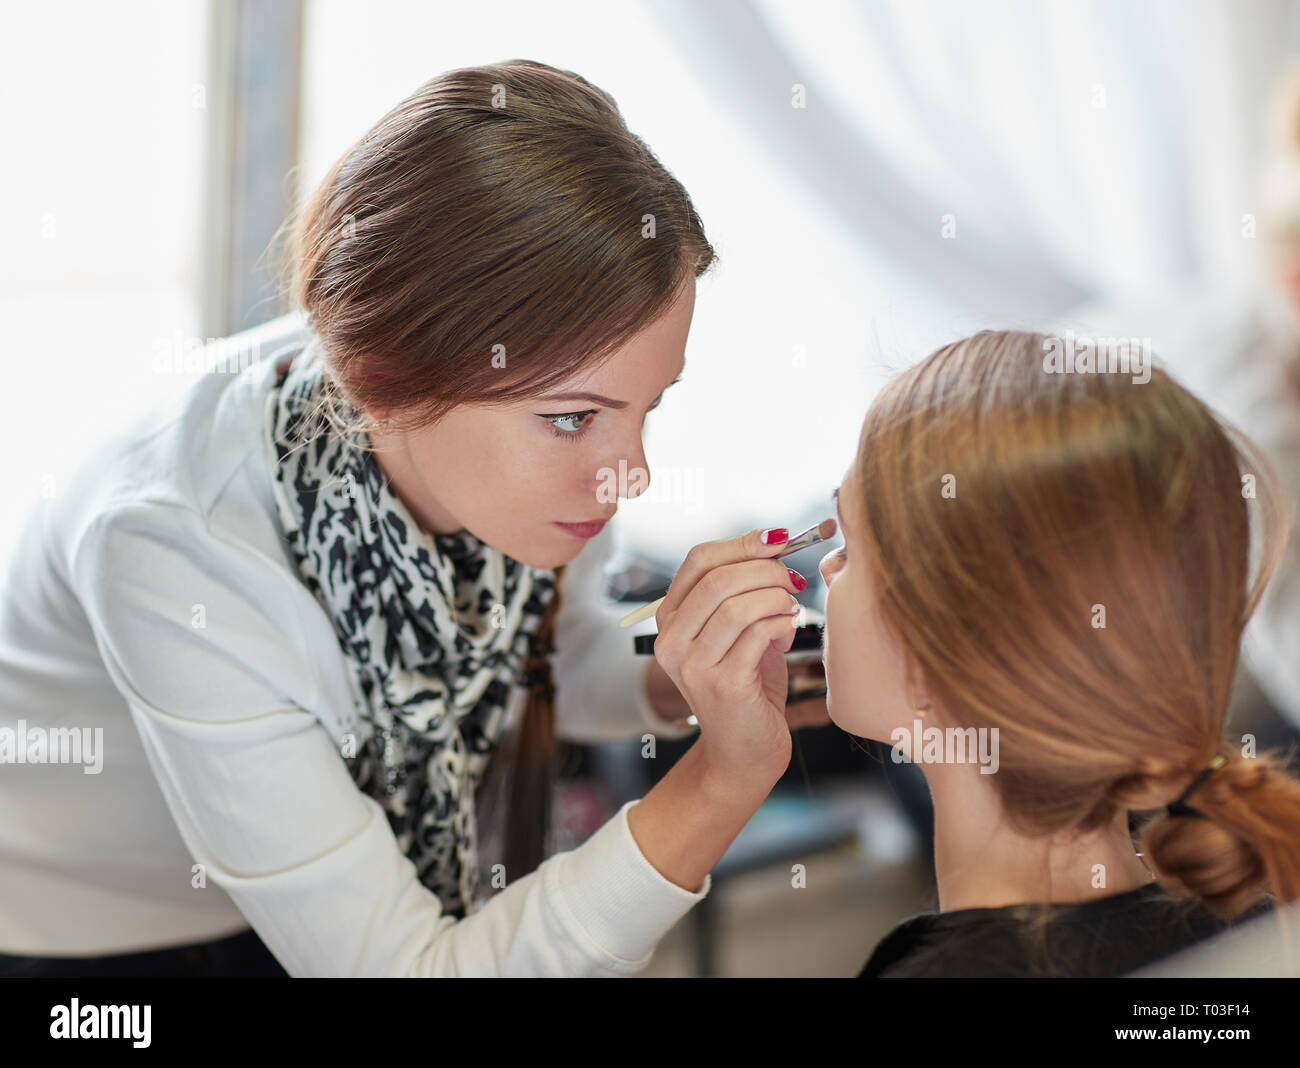 professional makeup artist does make-up in a beauty salon